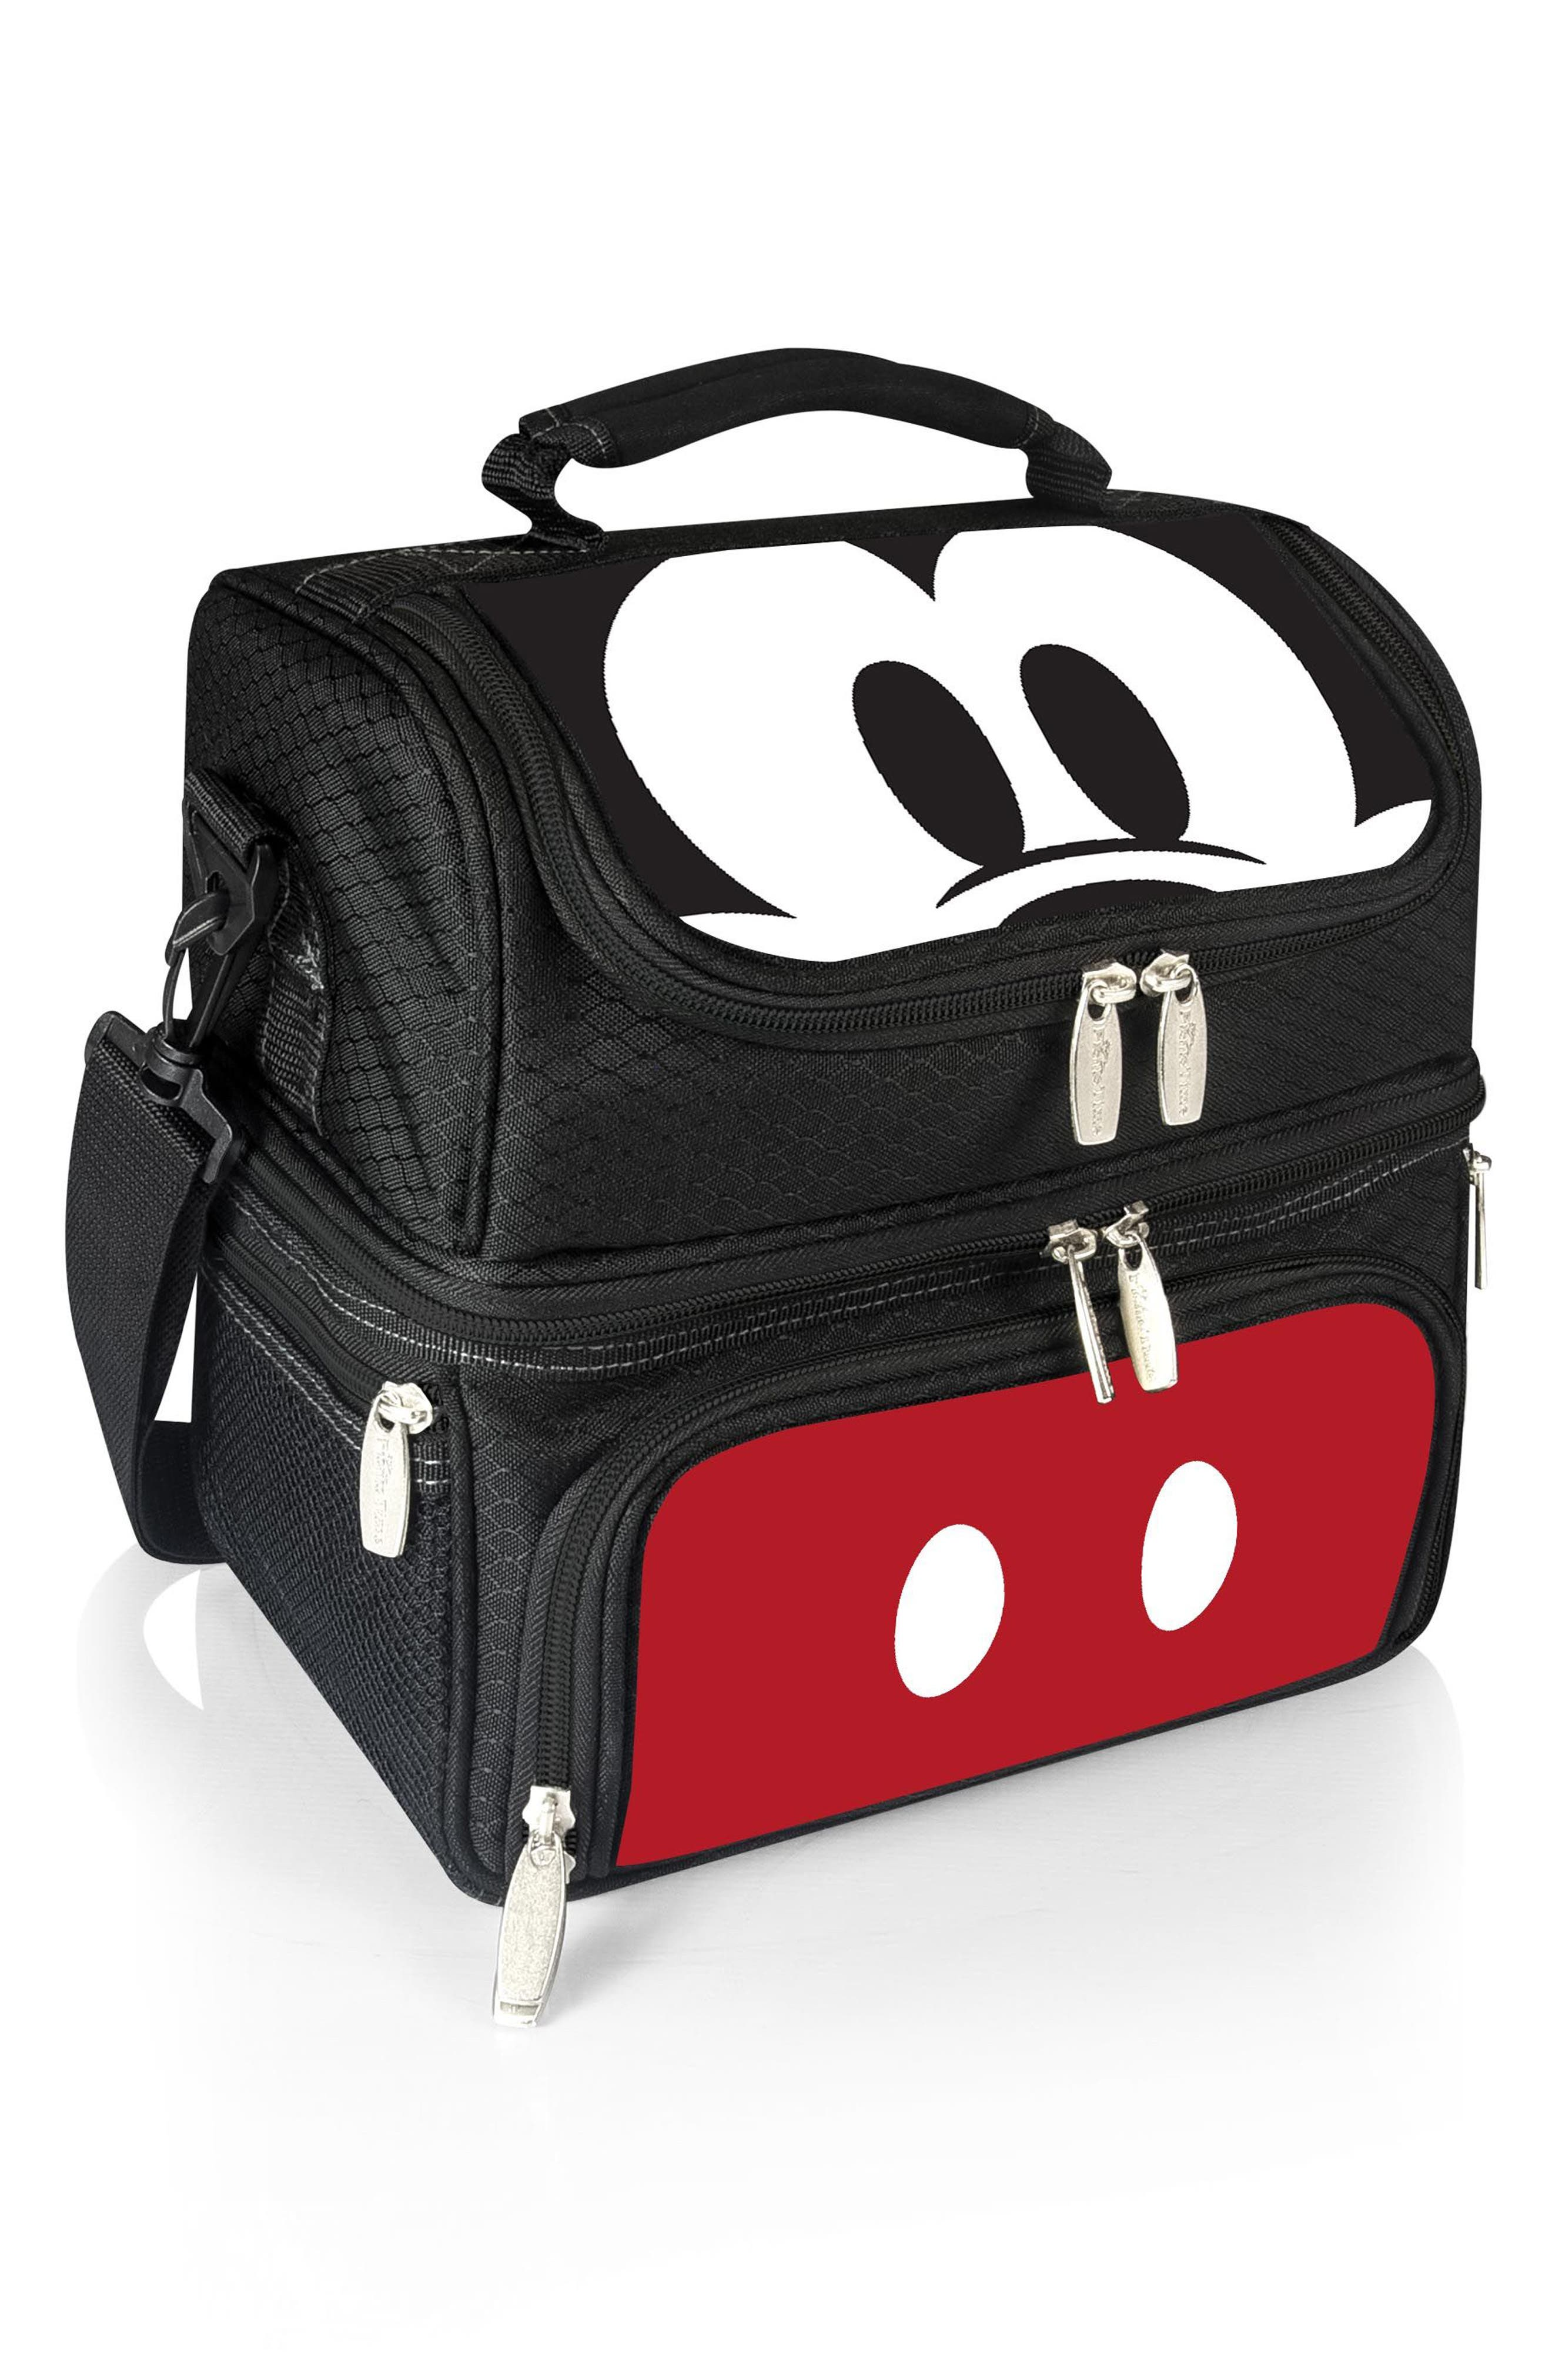 Main Image - Picnic Time Pranzo - Disney Insulated Lunch Tote